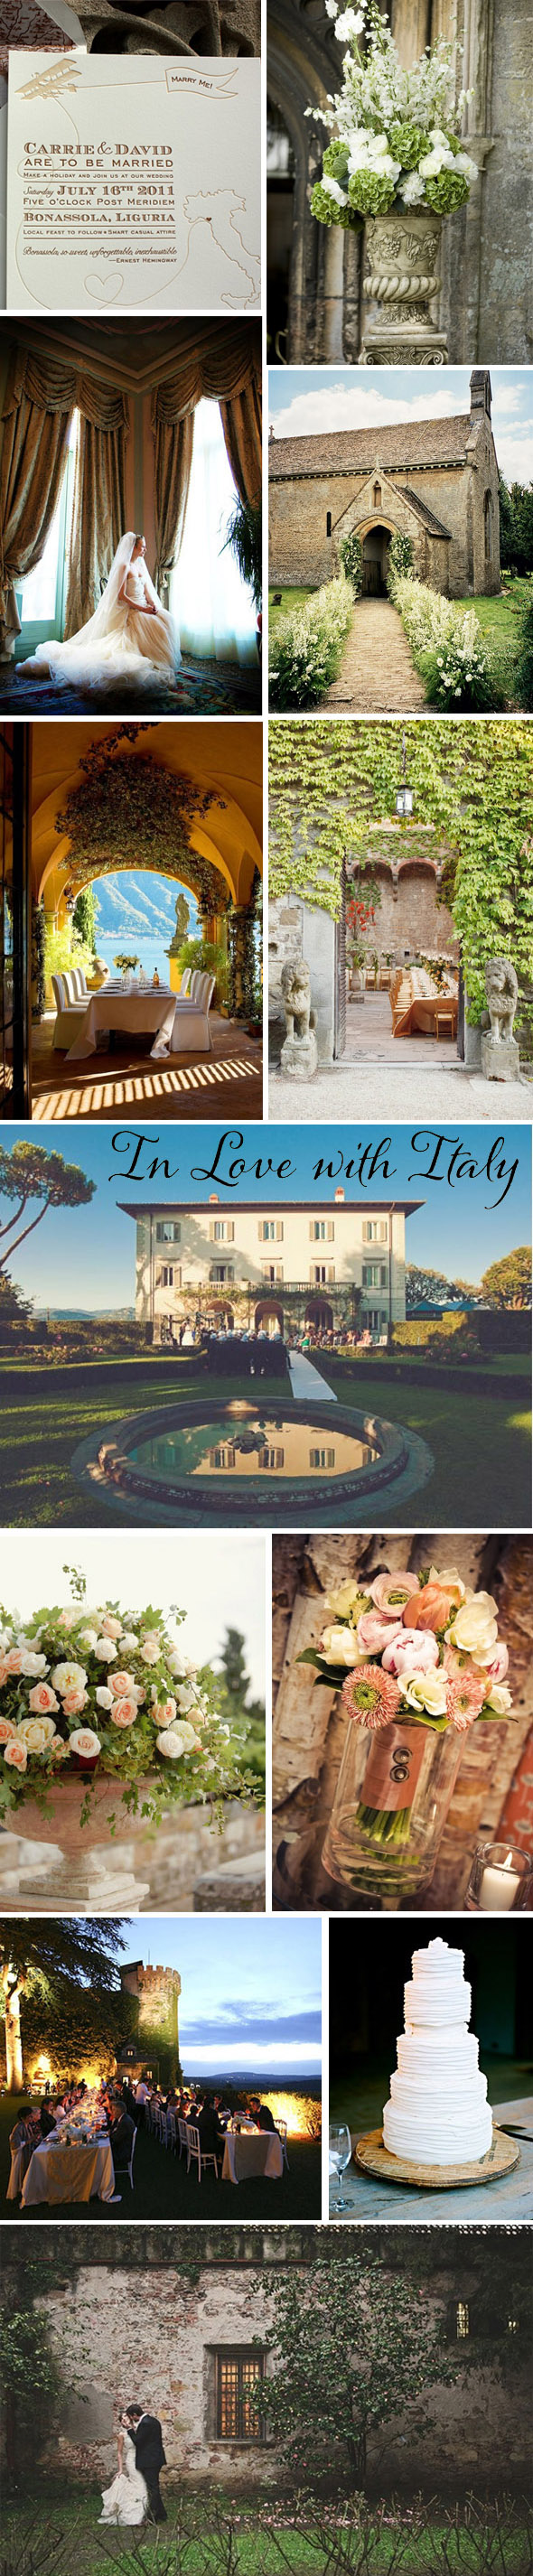 Italy destination wedding1 Italy Destination Weddings